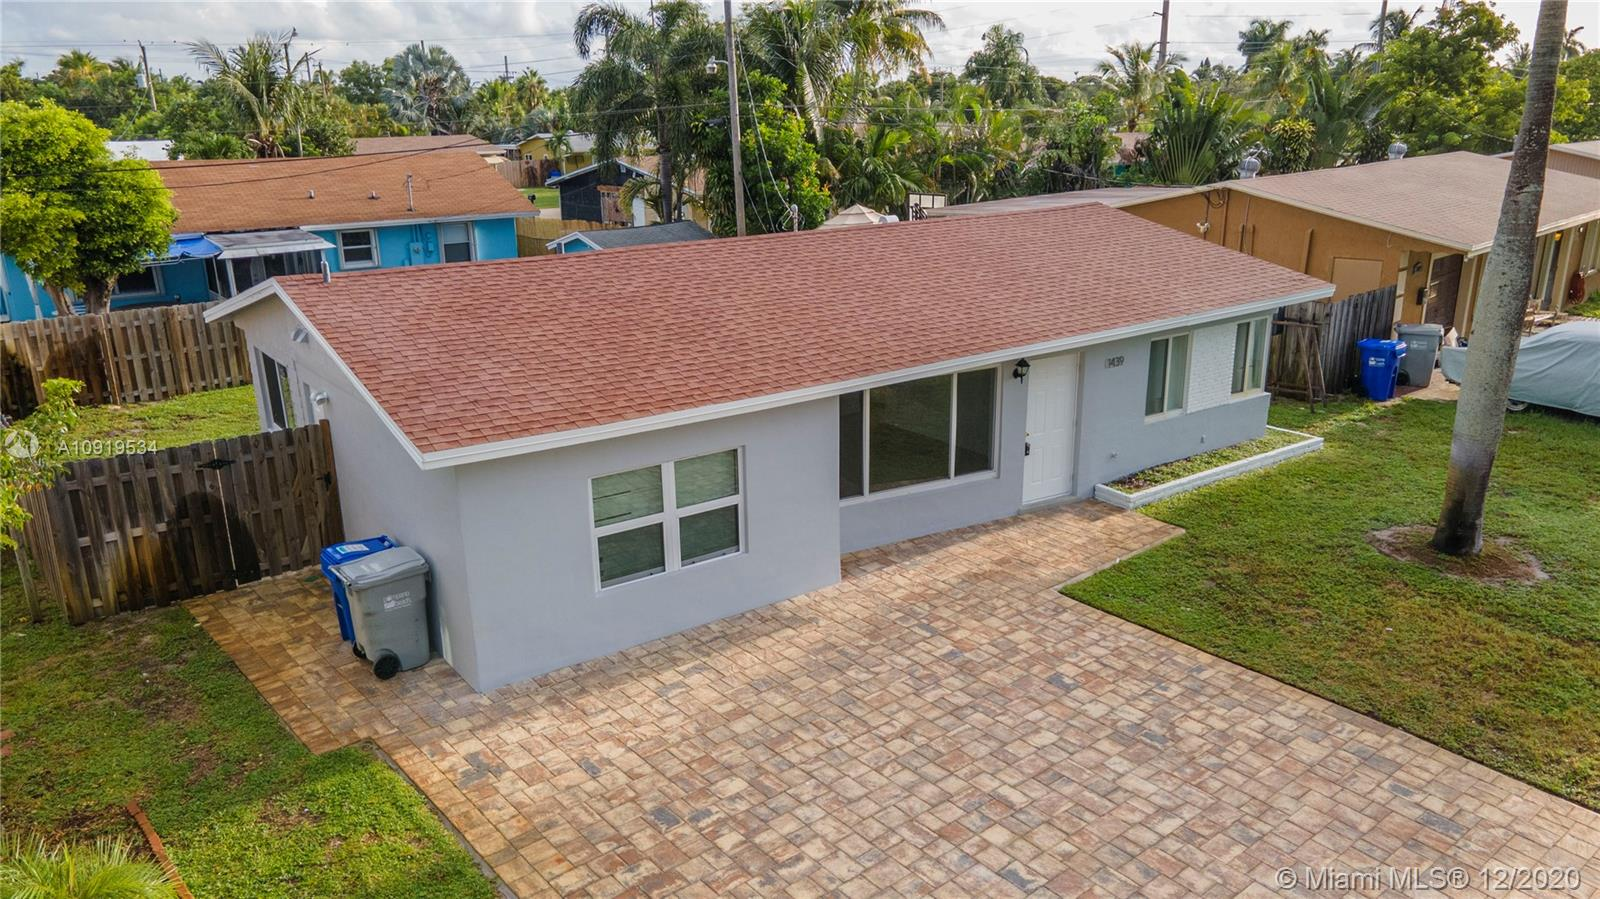 Details for 1439 28th Ct, Pompano Beach, FL 33064